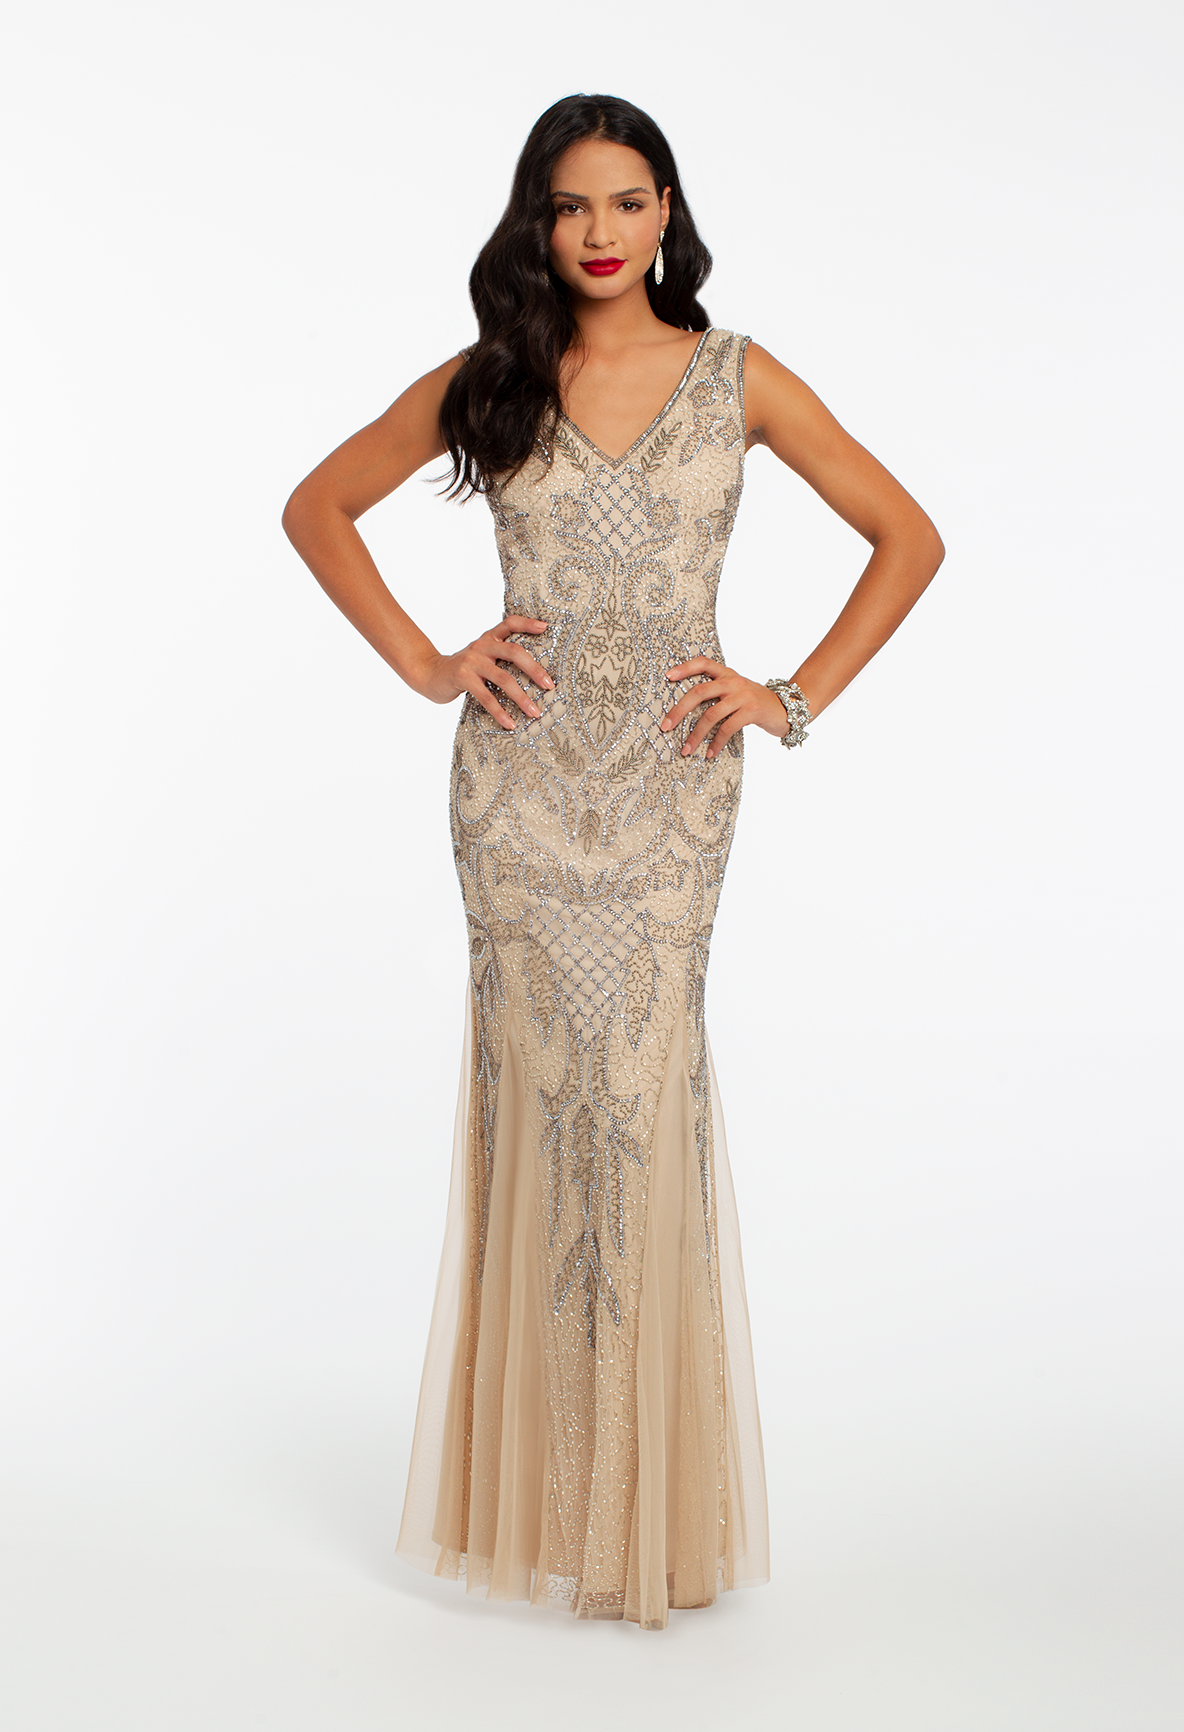 ... evening gown to rock to your next black-tie invite  Look no further.  This delicately detailed wedding guest dress features a V-neckline a096e777d